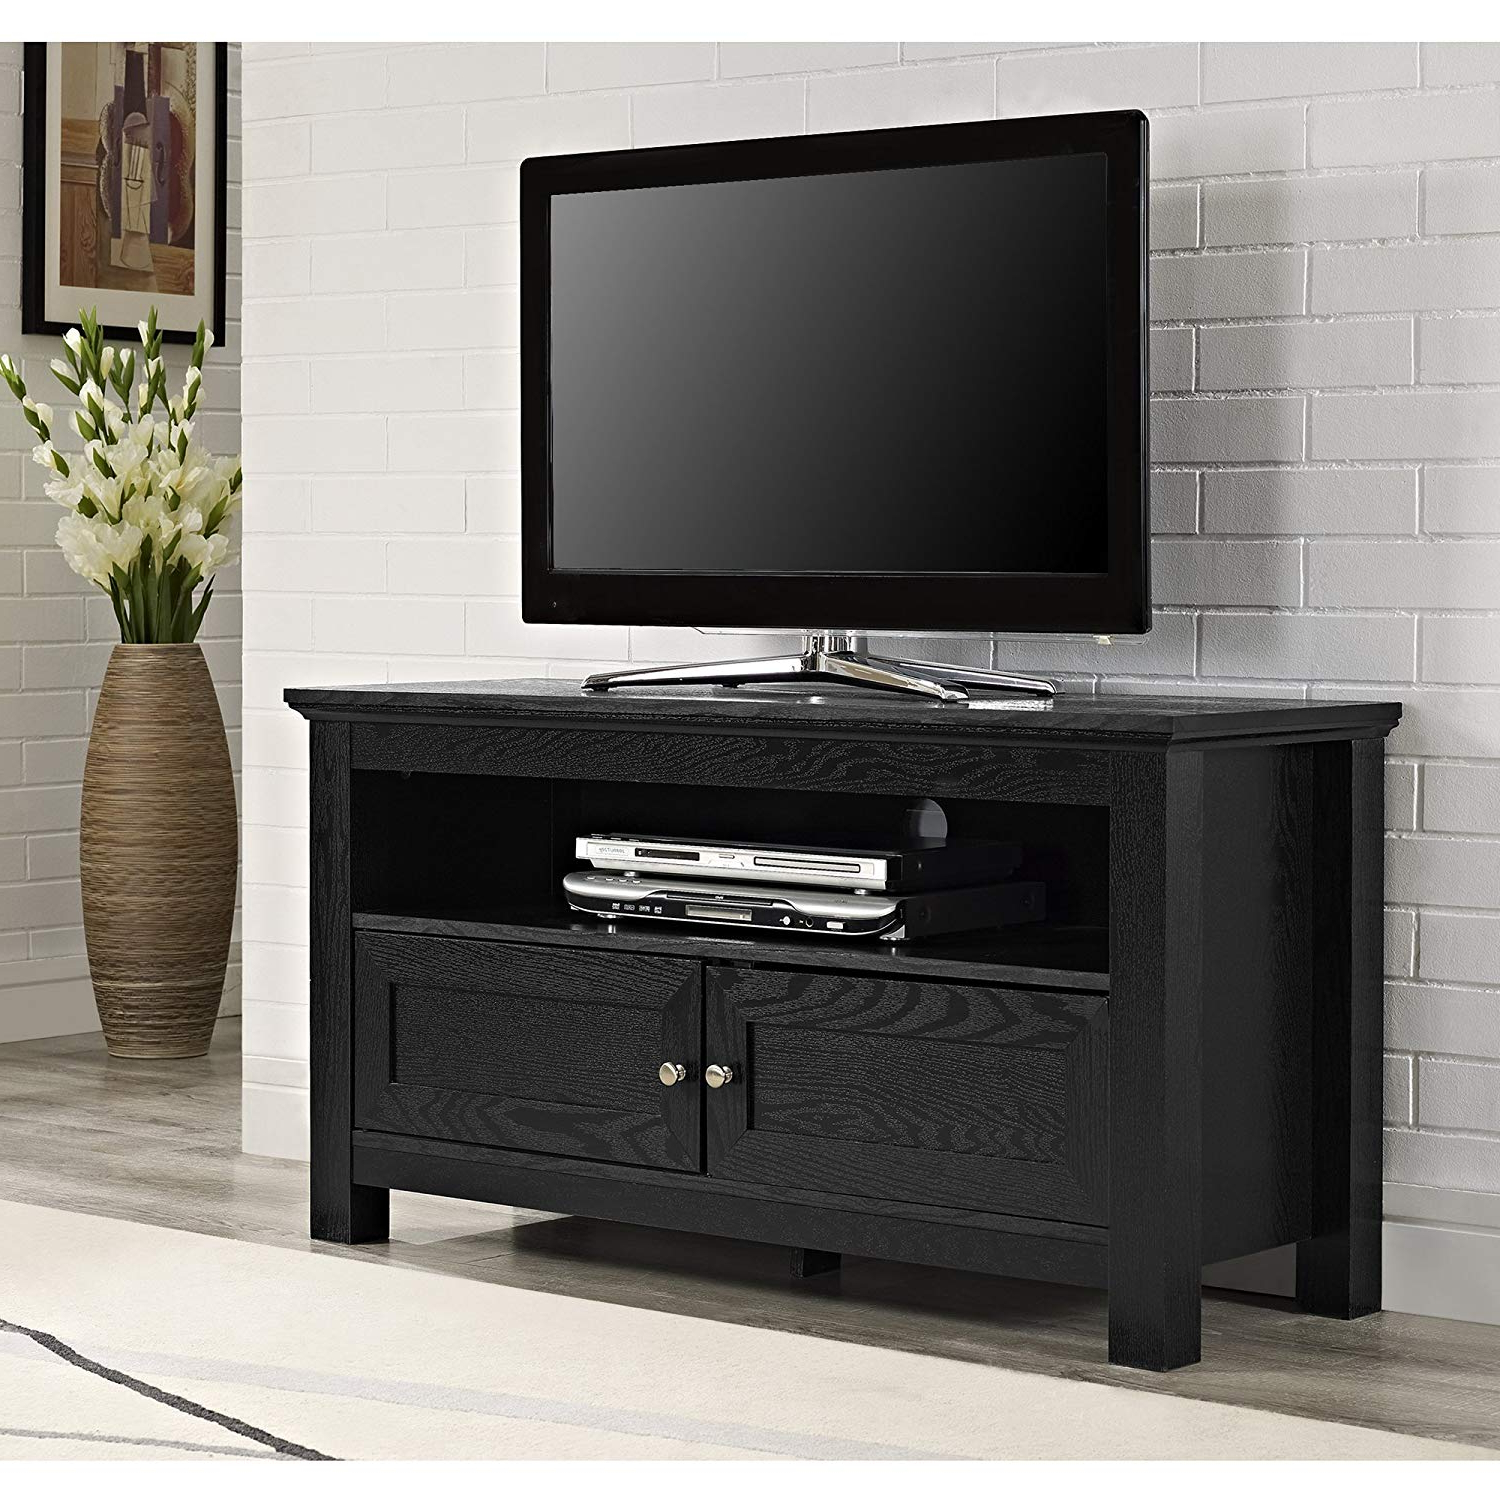 Corner Tv Stands For 46 Inch Flat Screen For Latest Amazon: Walker Edison 44 Inches Cortez Tv Stand Console, Black (Gallery 14 of 20)